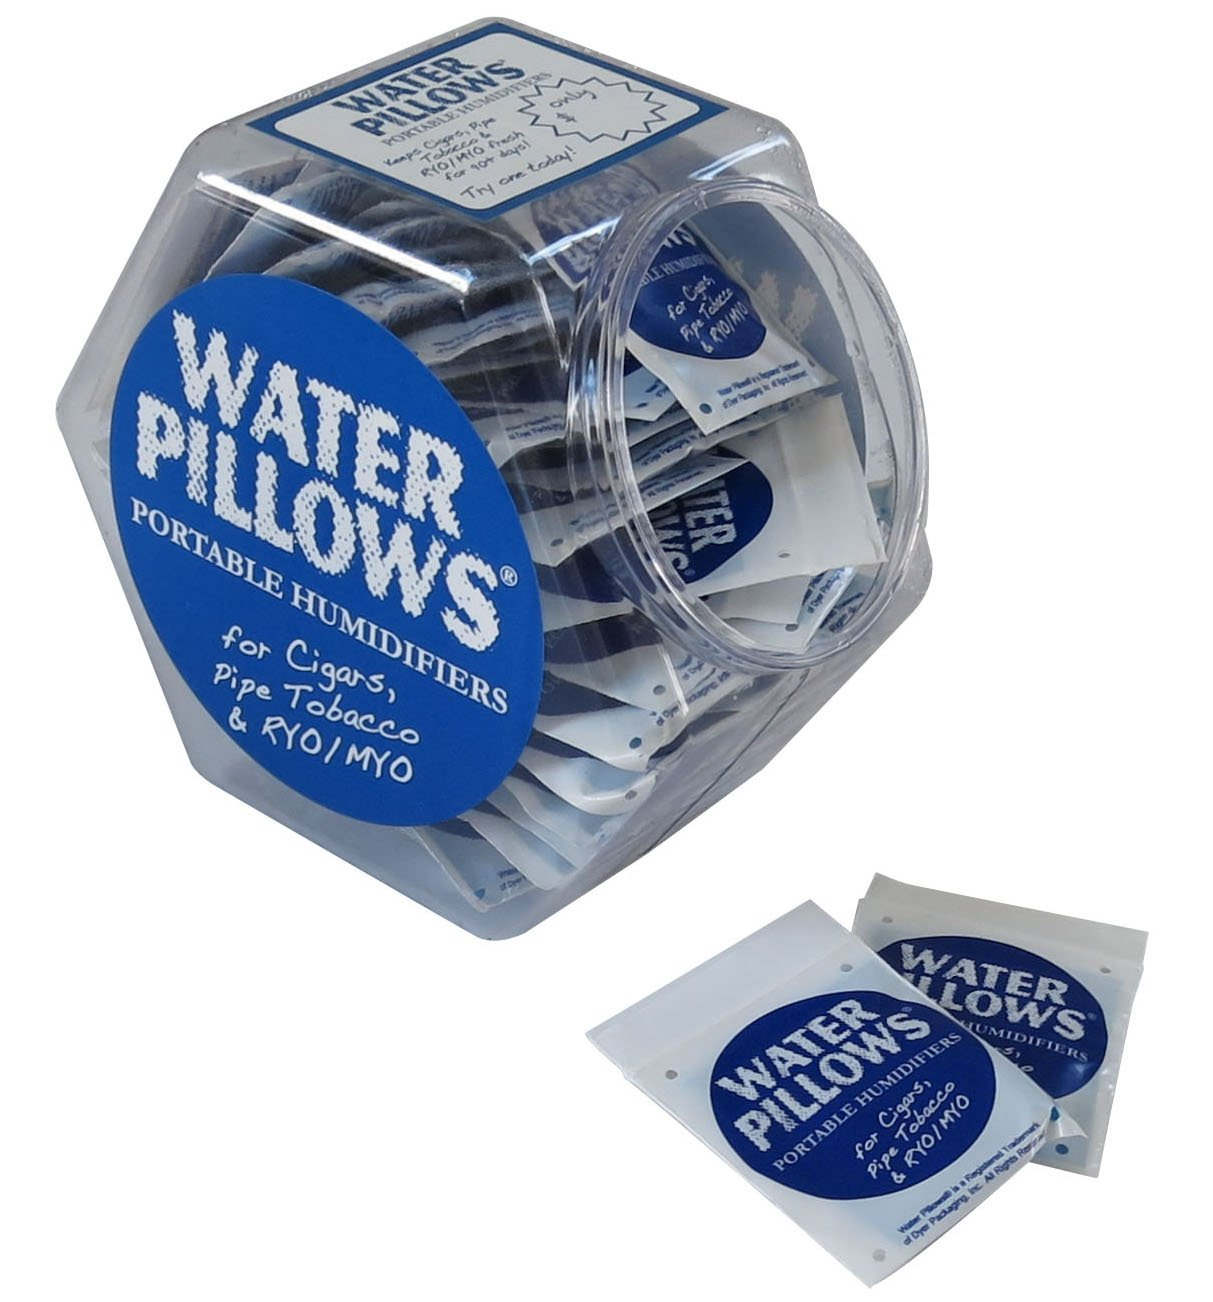 Prestige Import Group - Water Pillows Portable Humidifiers - 75 Pack - Free Counter Display